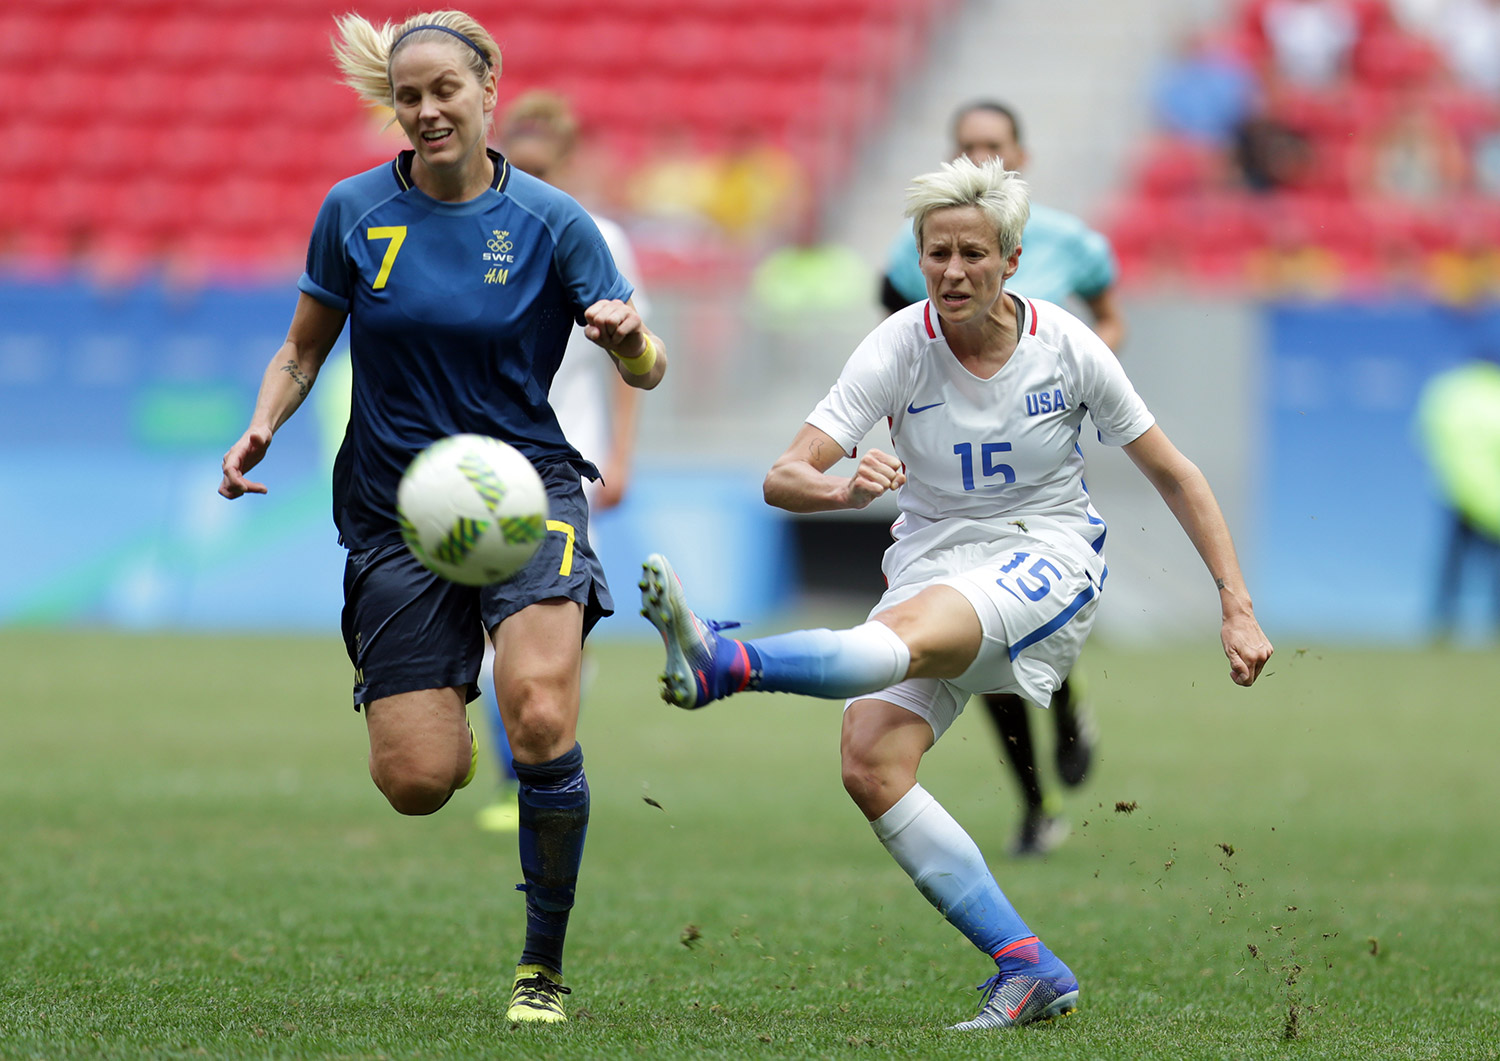 United States' Megan Rapinoe kicks the ball past Sweden's Lisa Dahlkvist during a quarterfinal Olympic soccer match in Brasilia on Friday. The United States lost in a shootout.